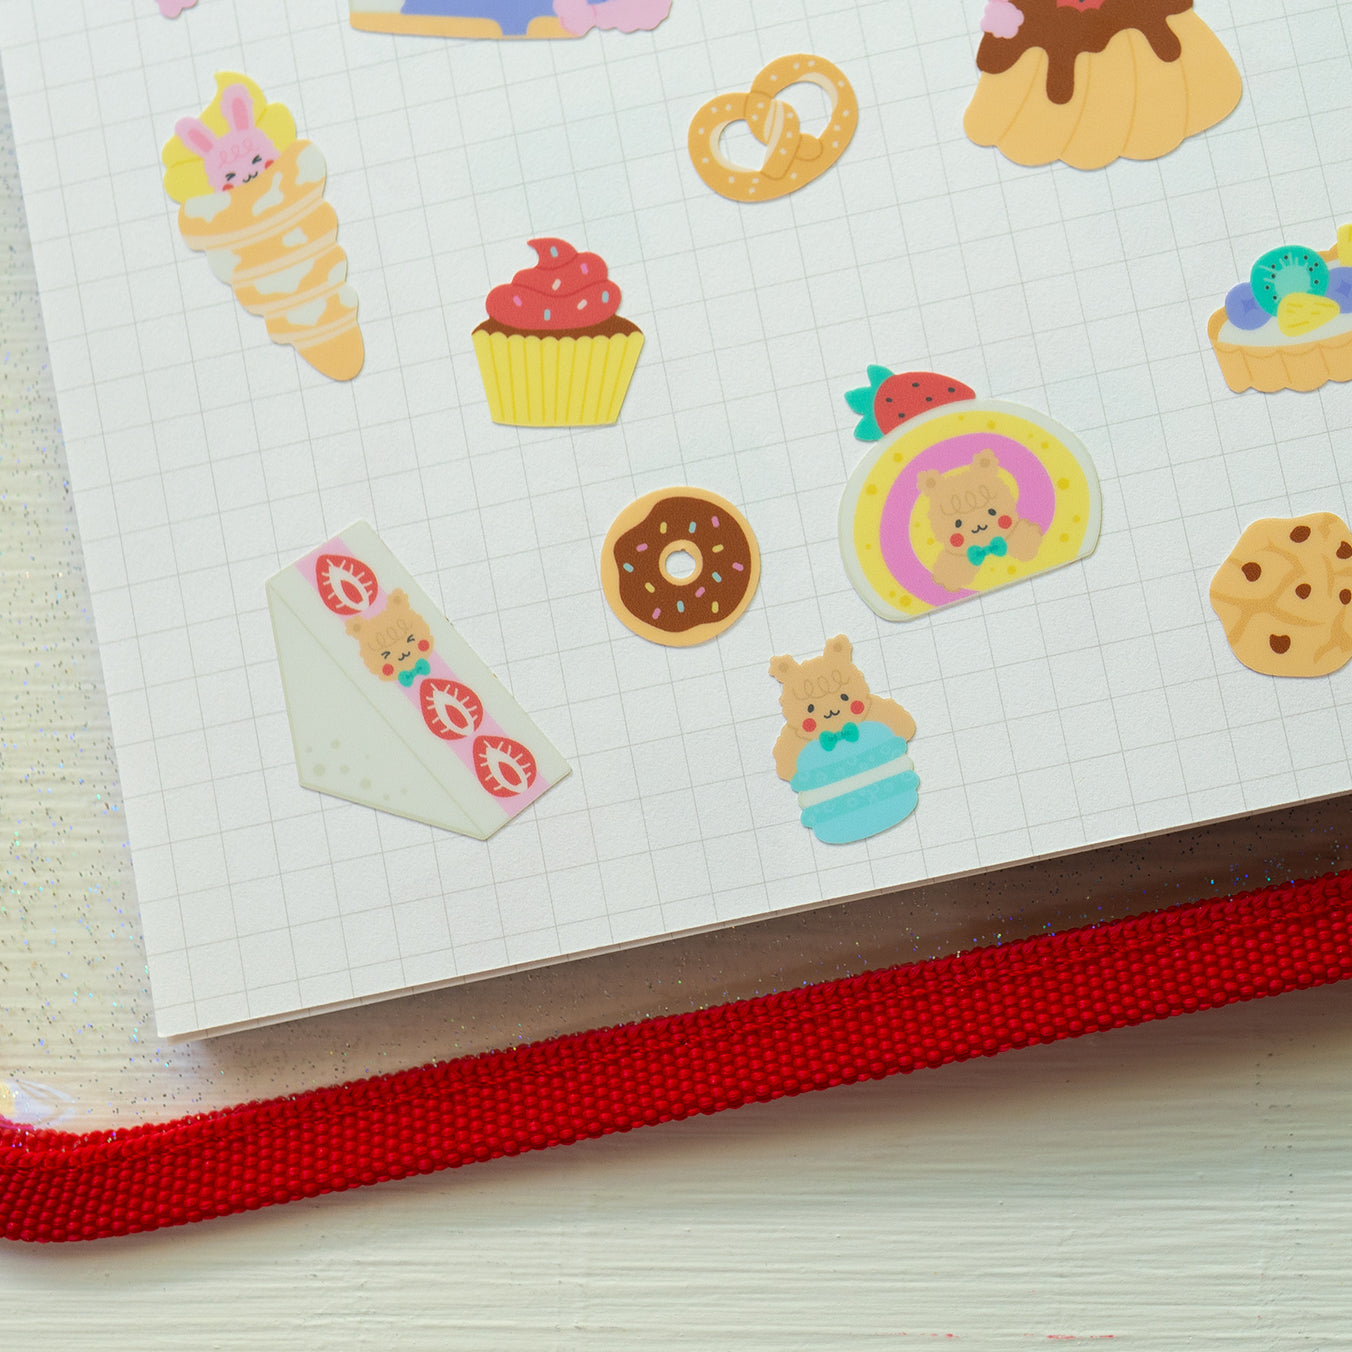 A82-Super dessert 2 sticker sheet